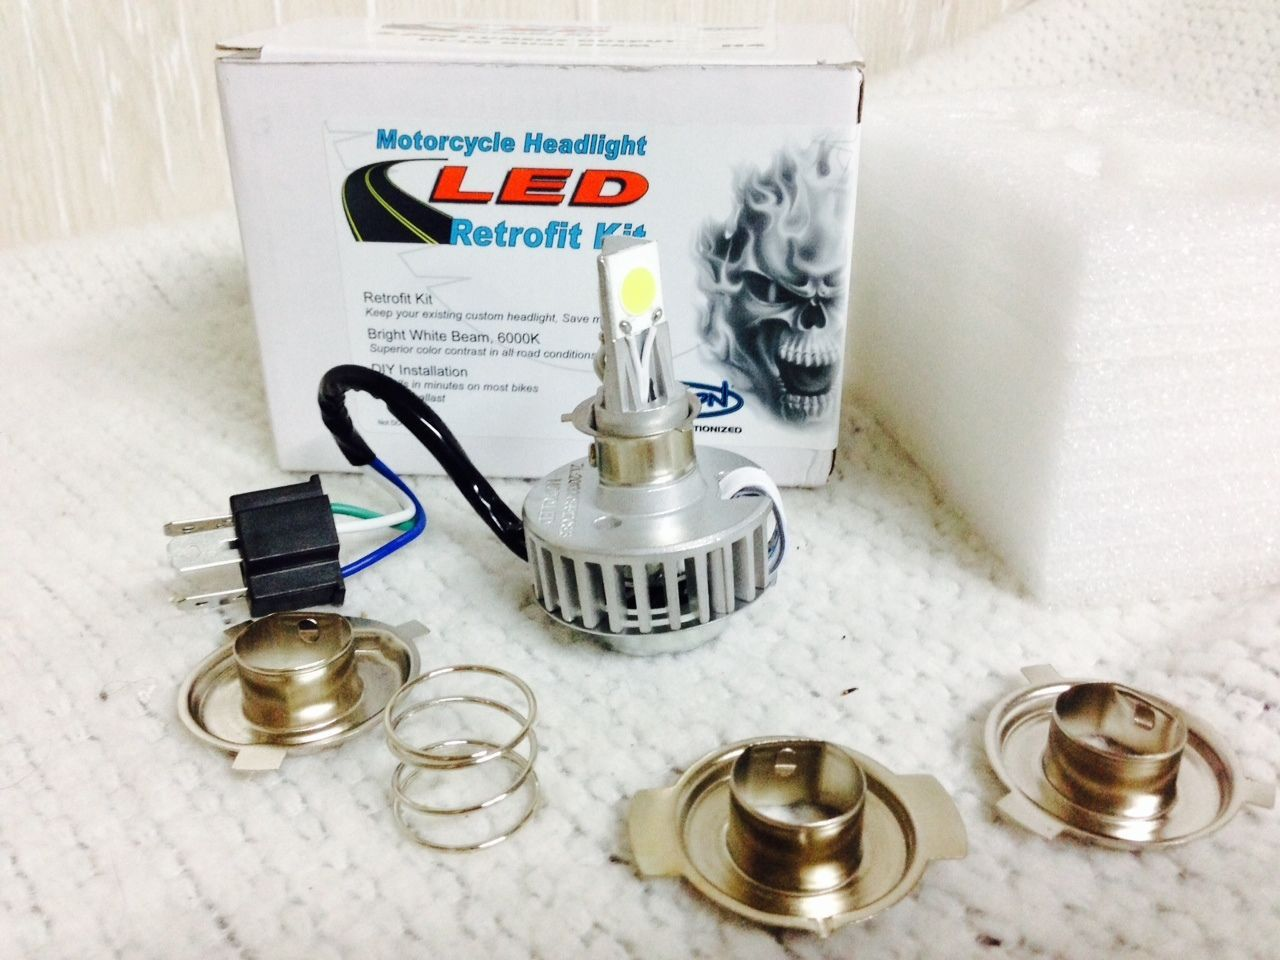 New Cyron LED Headlight Retrofit Kit to Replace Stock H4 Bulb 1 amp  Harley